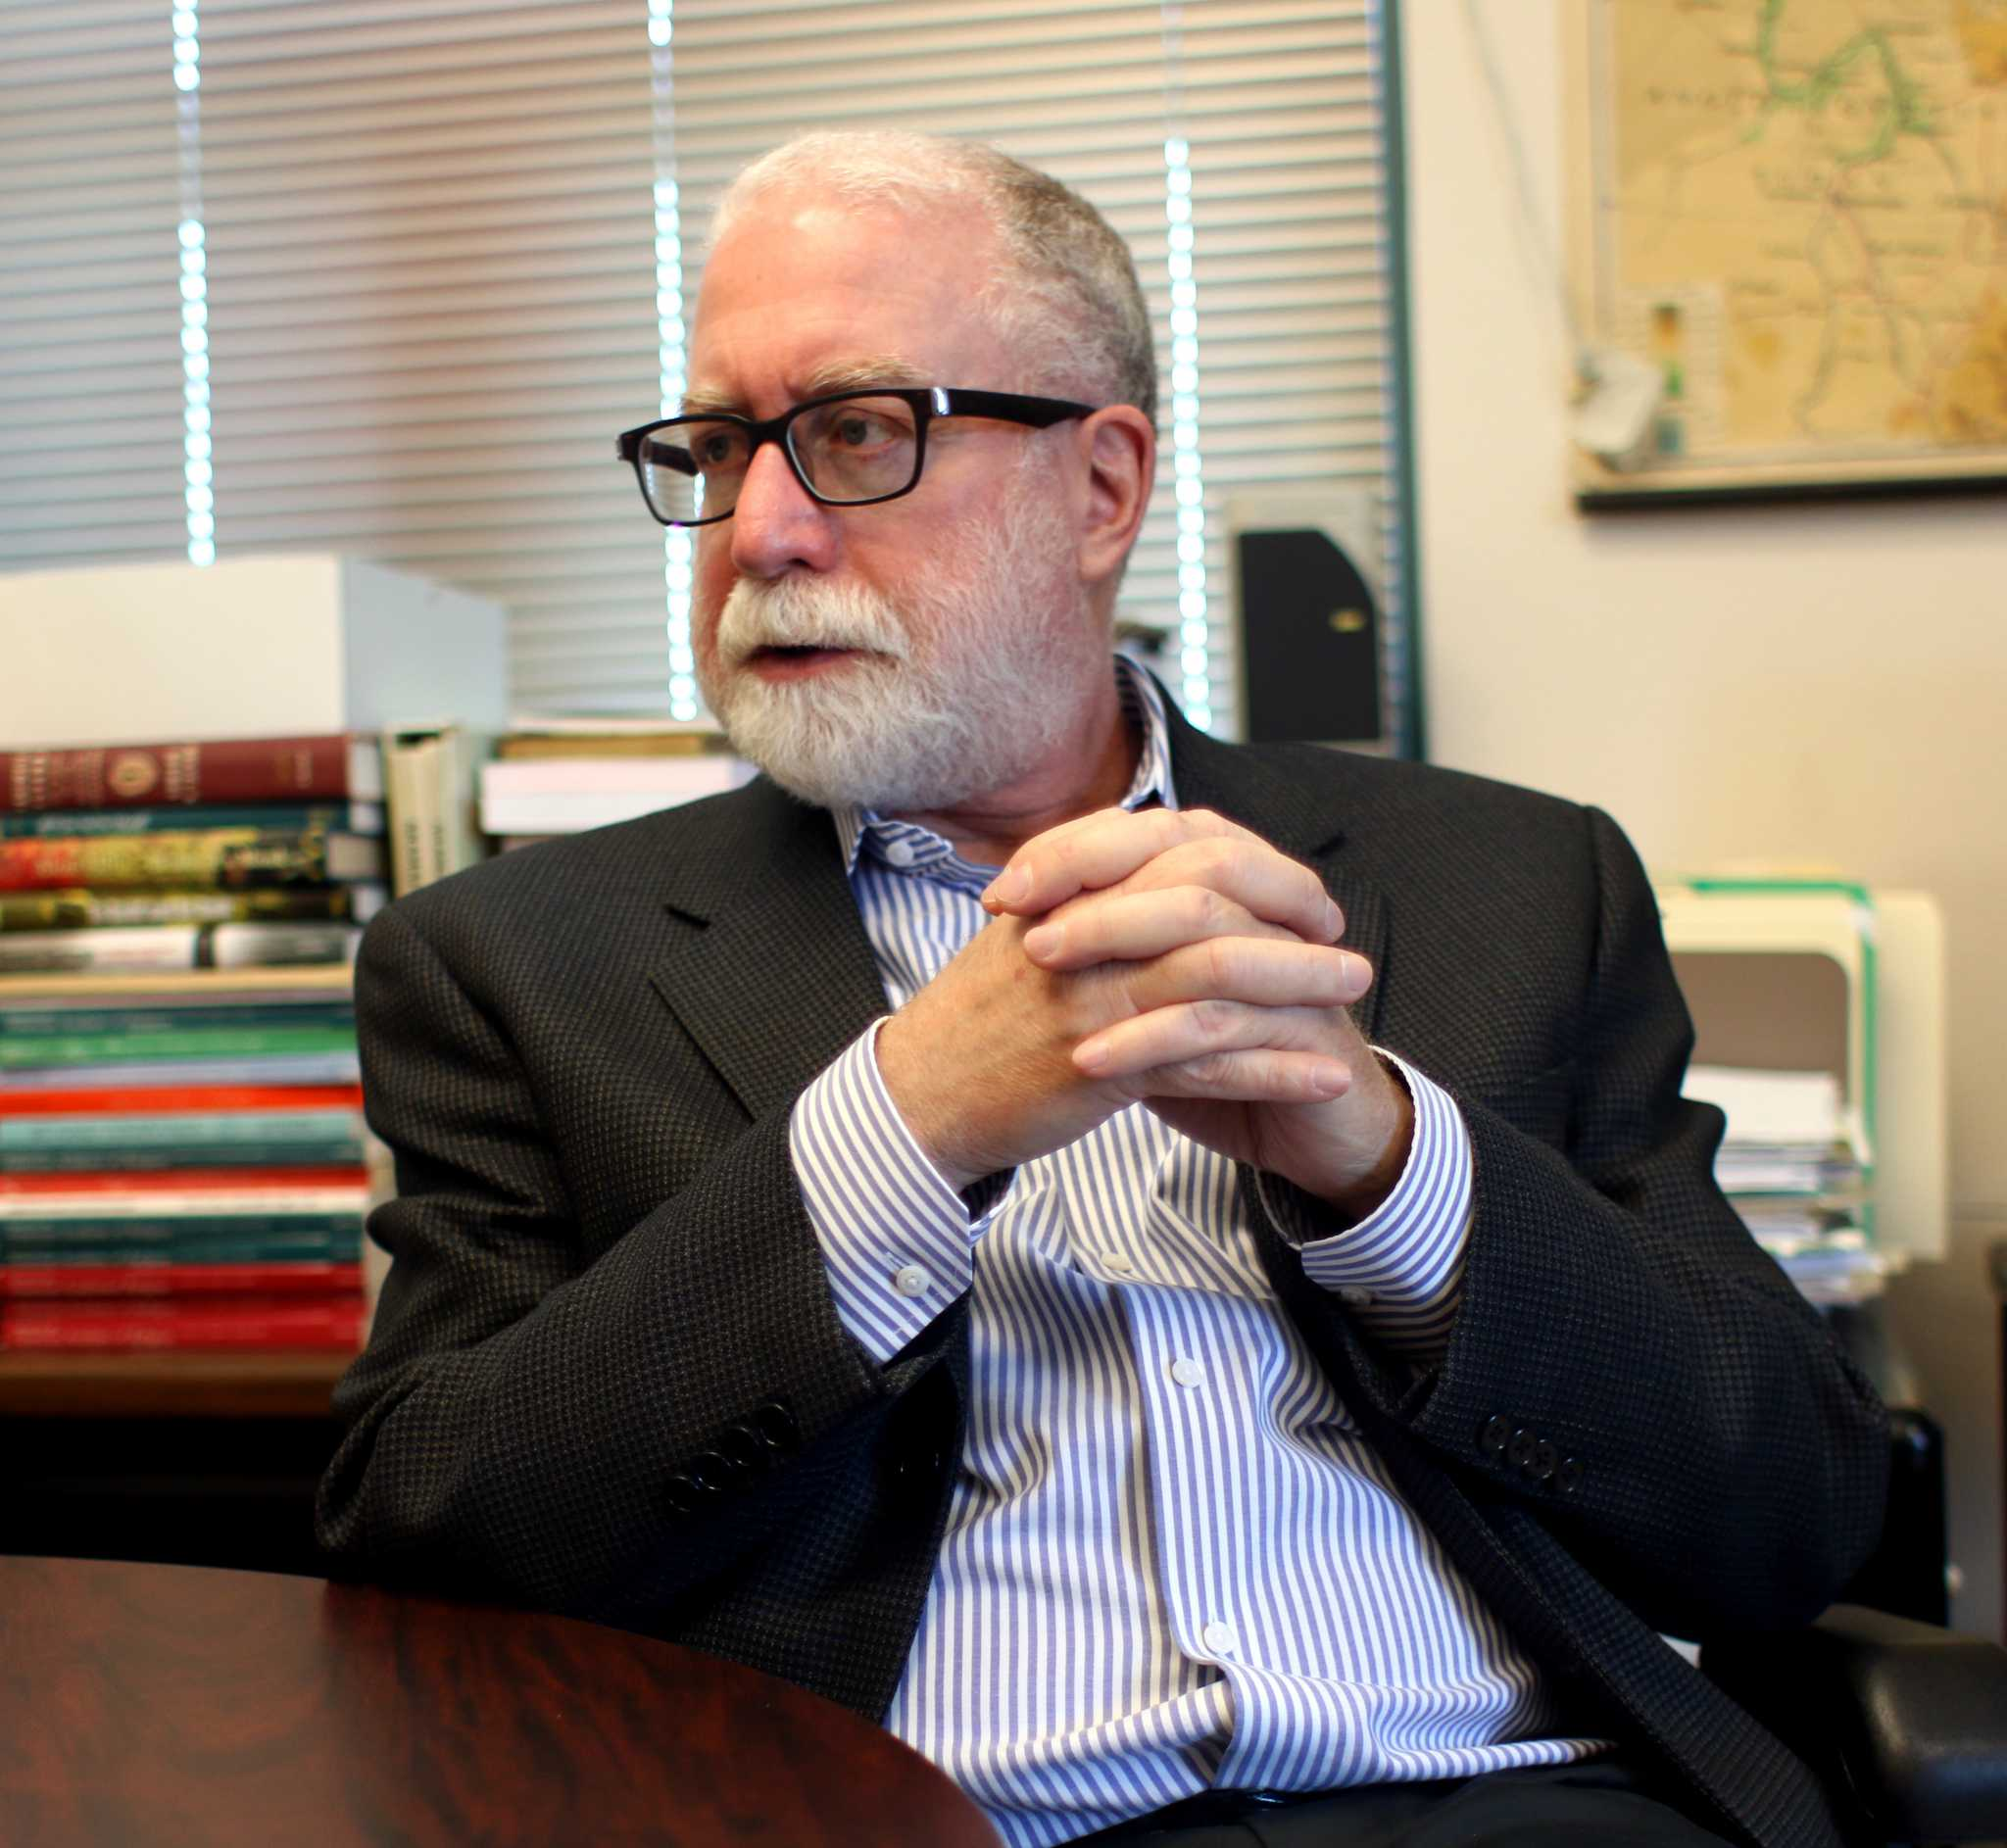 Department chair of Jewish studies, Fred Astern discusses the relationship between campus officials and the Jewish department on in his office located on campus on May 8, 2017. (Laila Rashada/ Xpress)